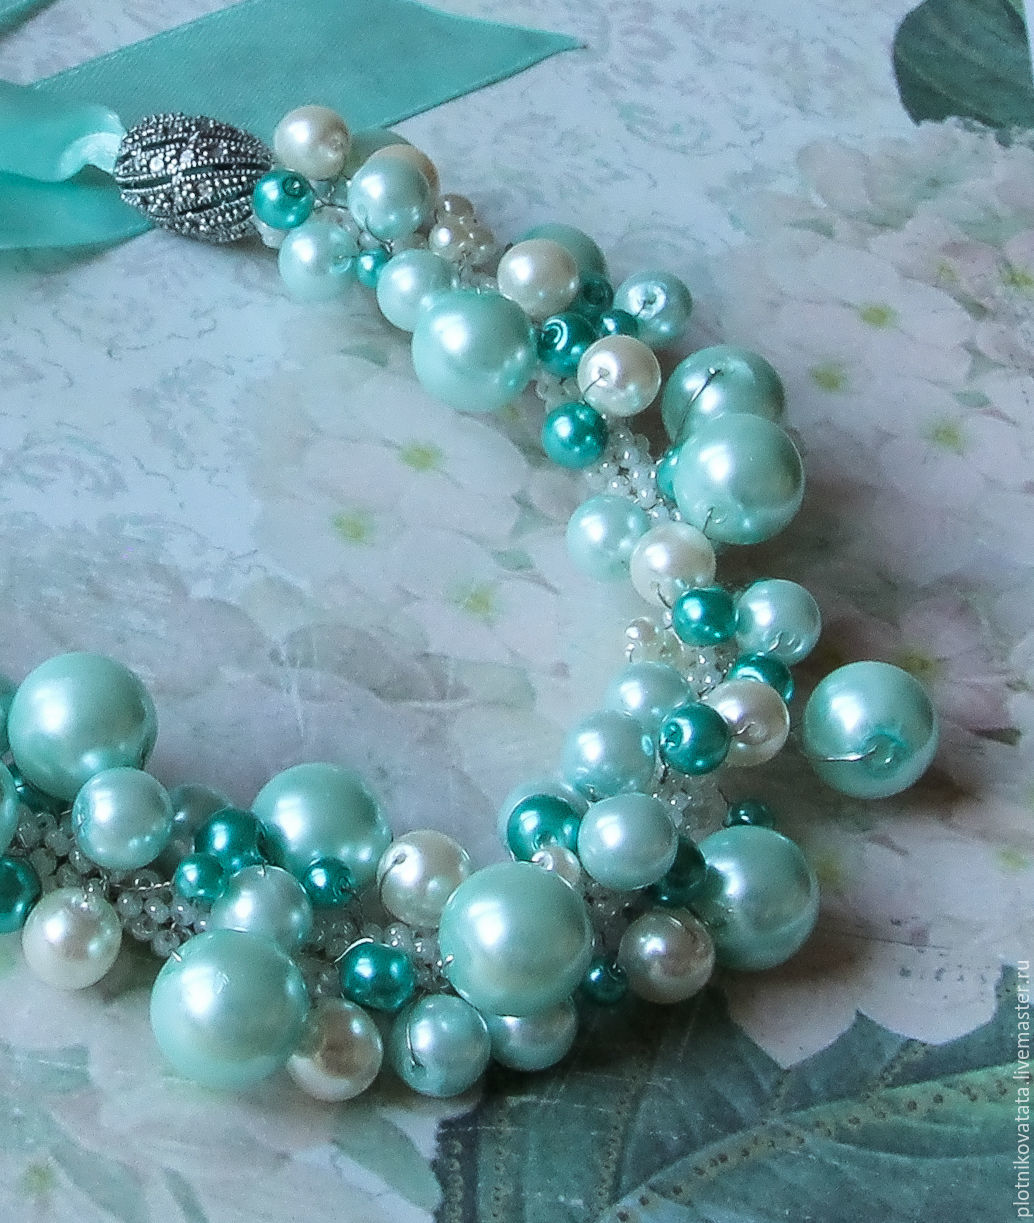 Mint-a cool necklace with a pearl, Necklace, St. Petersburg,  Фото №1